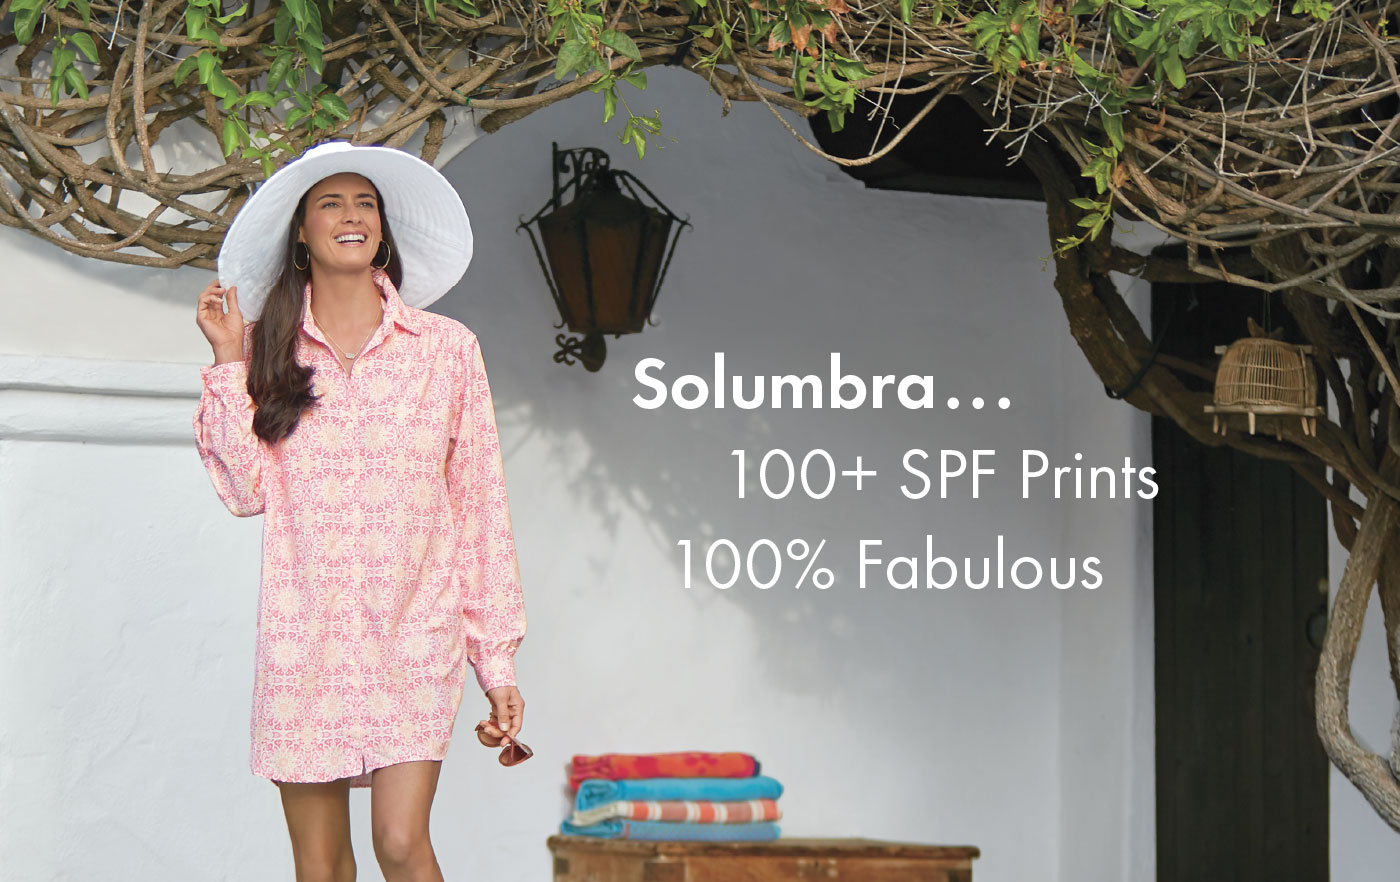 868818e7e7 Montana Women S Travel Clothing images Sun protective clothing by solumbra  100 spf sun protection hats